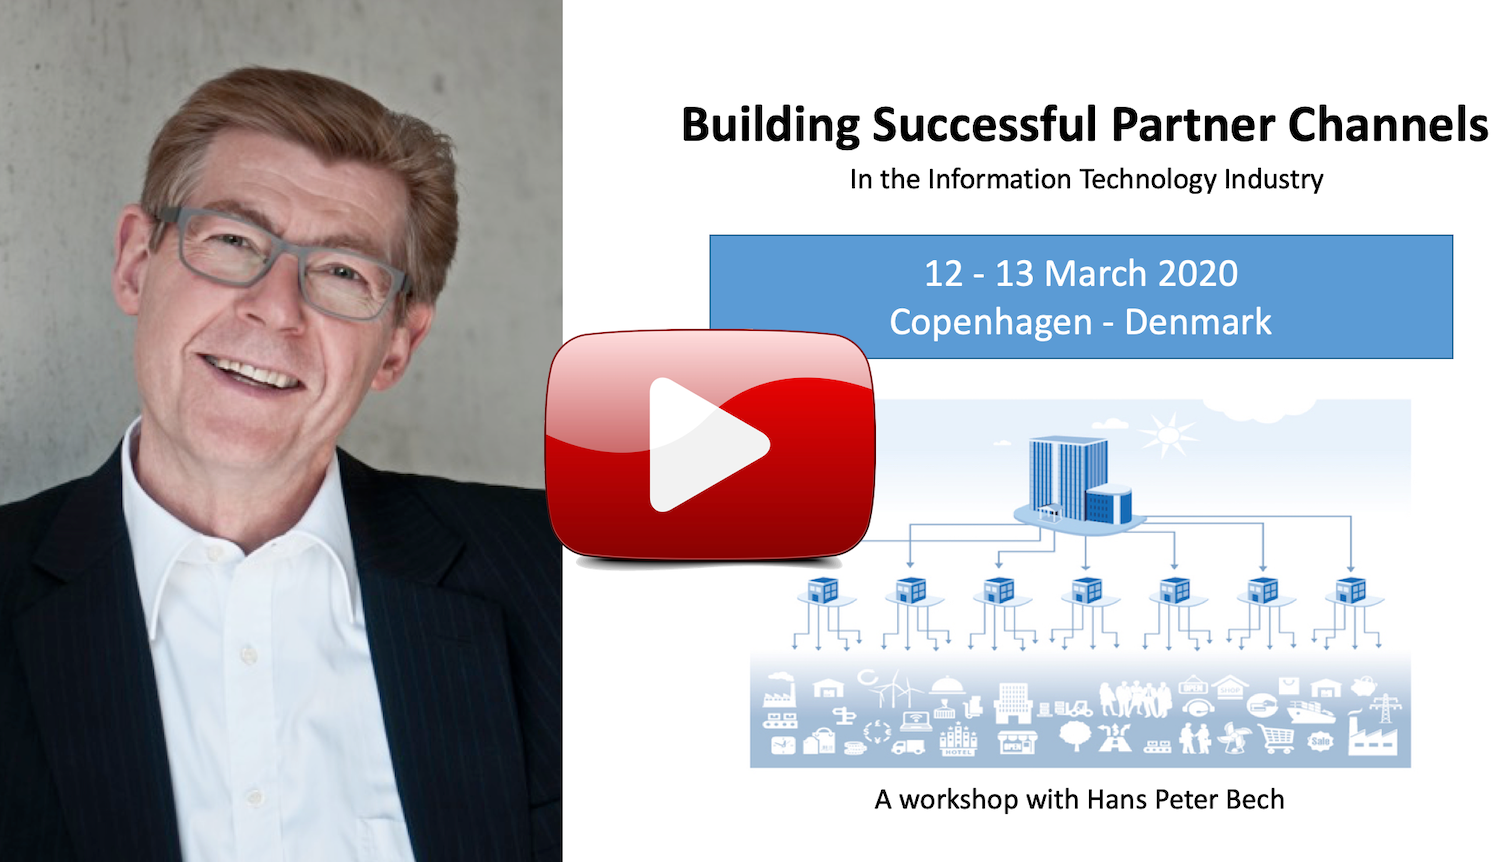 building-successful-partner-channels-cph-03-2020-homepage